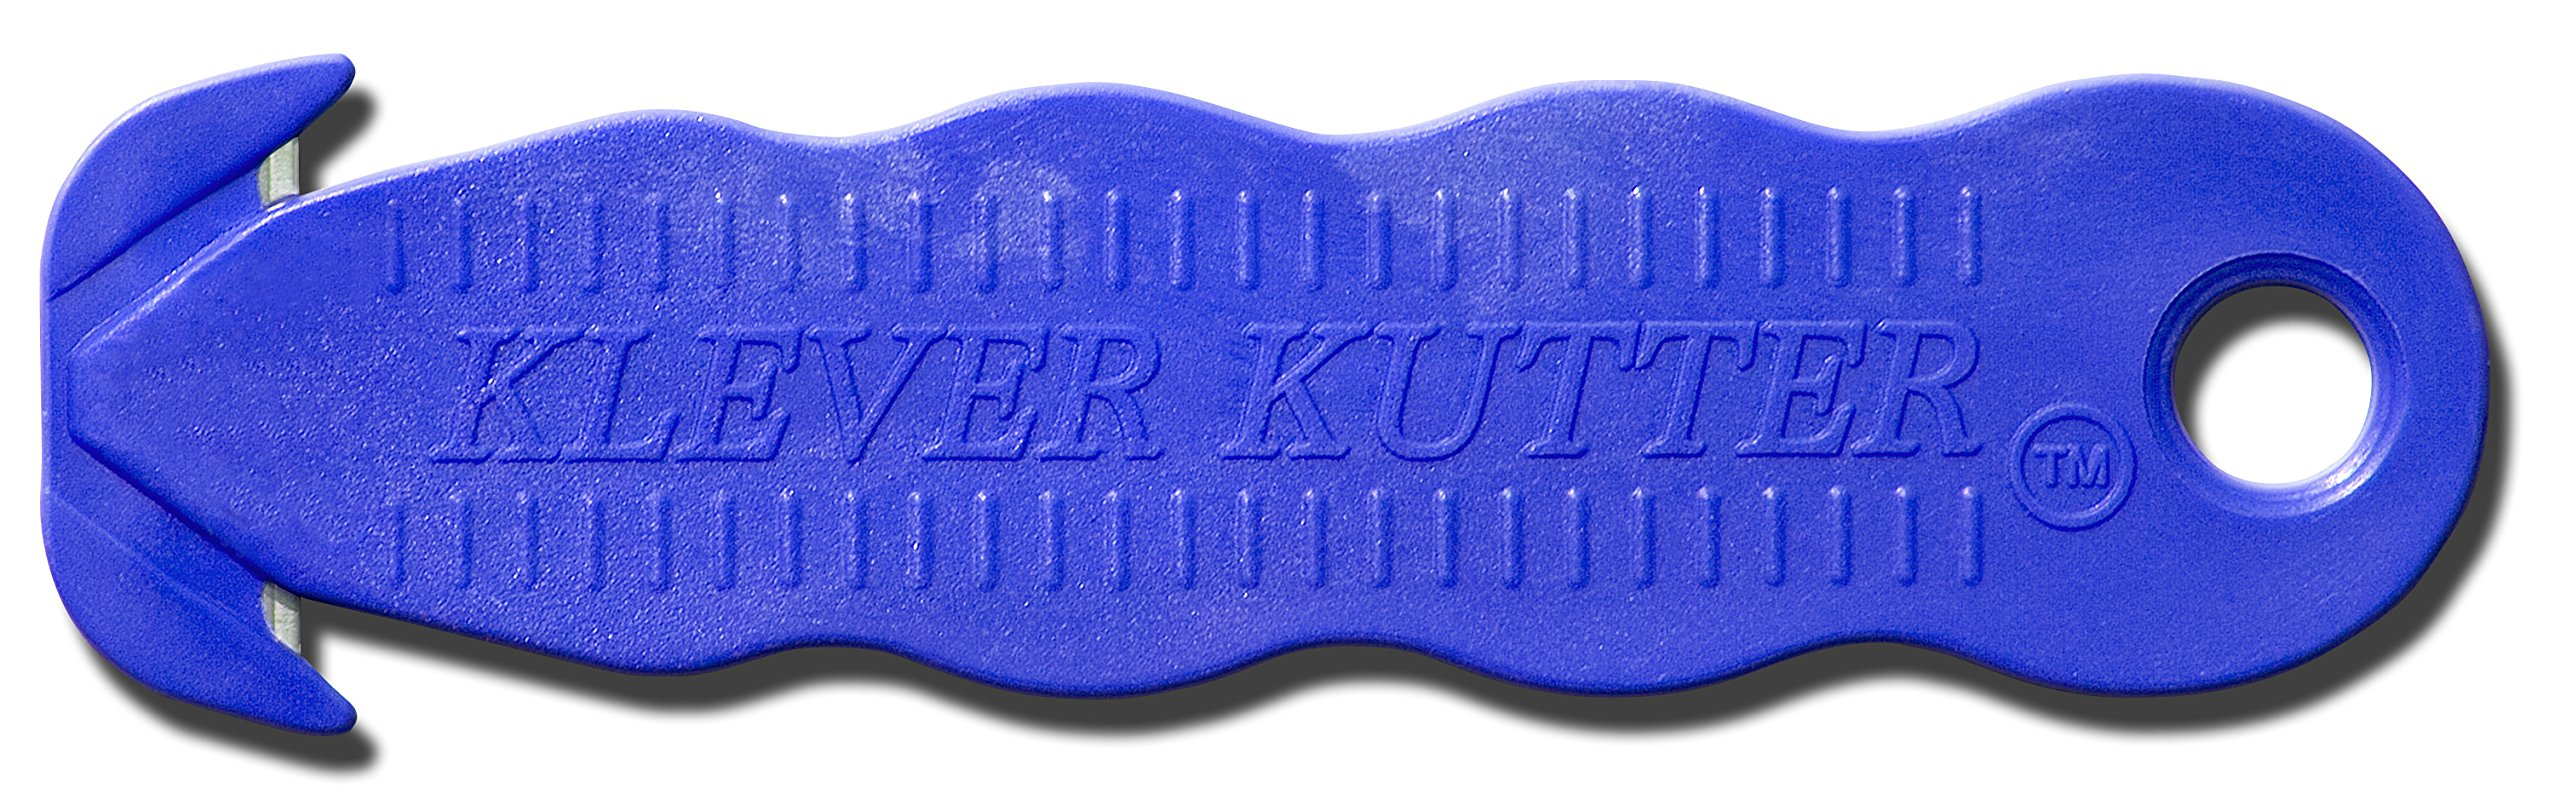 Box Cutter, Klever Kutter 100 Pack - Safety Cutter - Blue by Klever Kutter